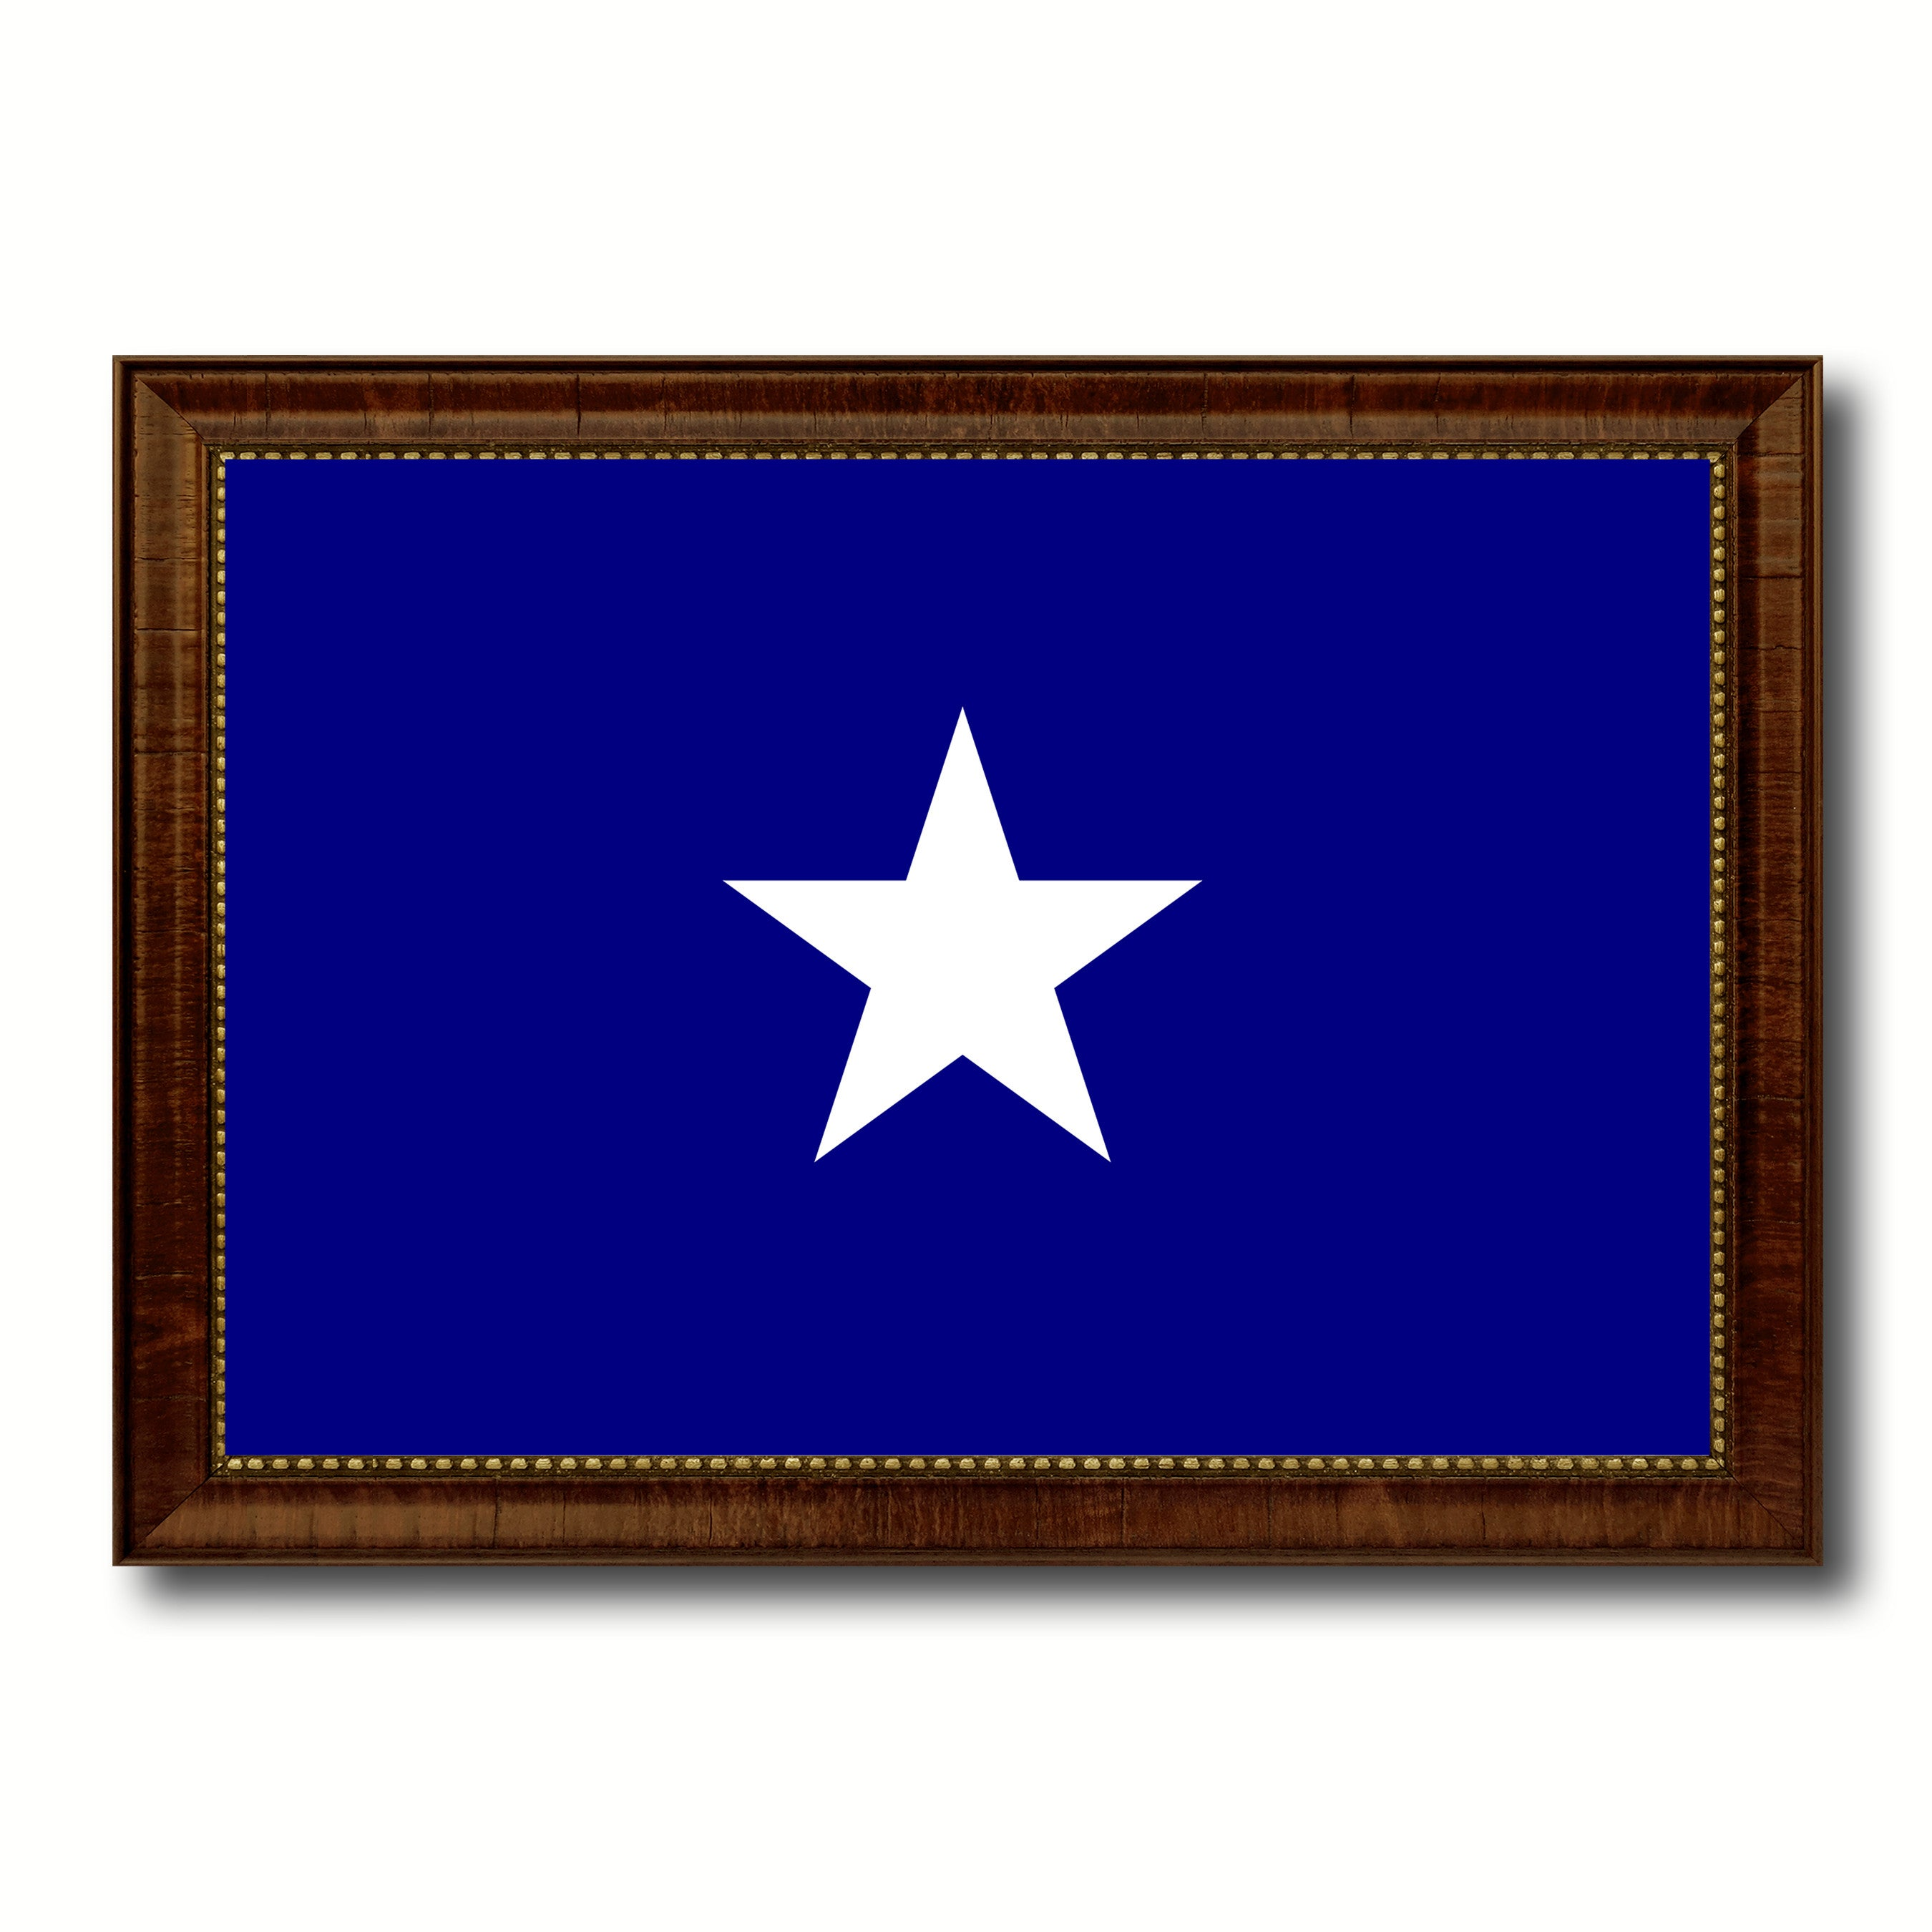 Bonnie Blue in Republic of West Florida Military Flag Canvas Print with Brown Picture Frame Home Decor Wall Art Gift Ideas